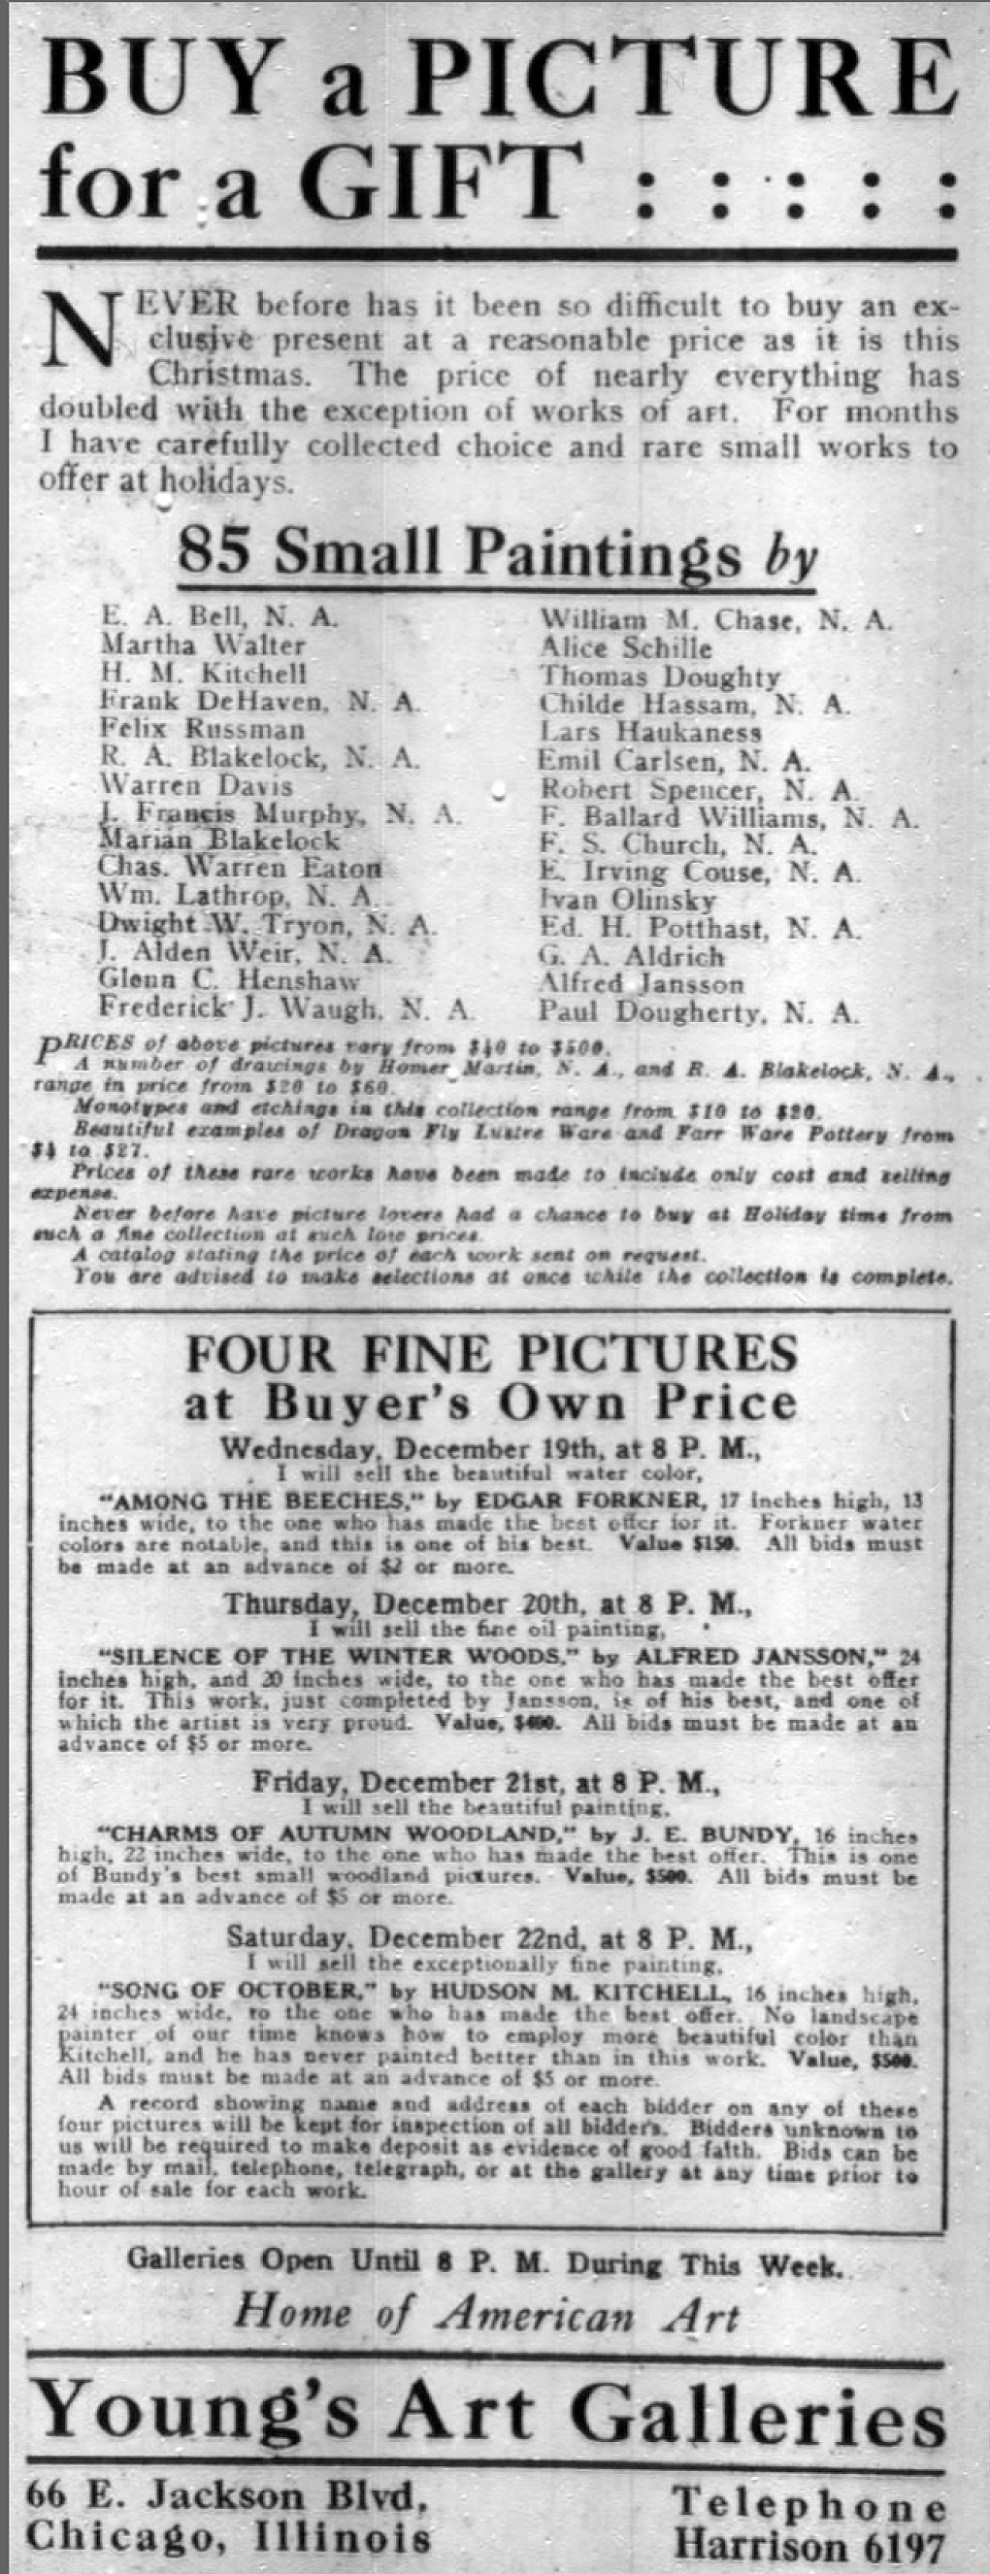 """Chicago Daily Tribune, Chicago, IL, """"Buy a picture for a gift"""", Tuesday, December 18, 1917, page 6, not illustrated"""